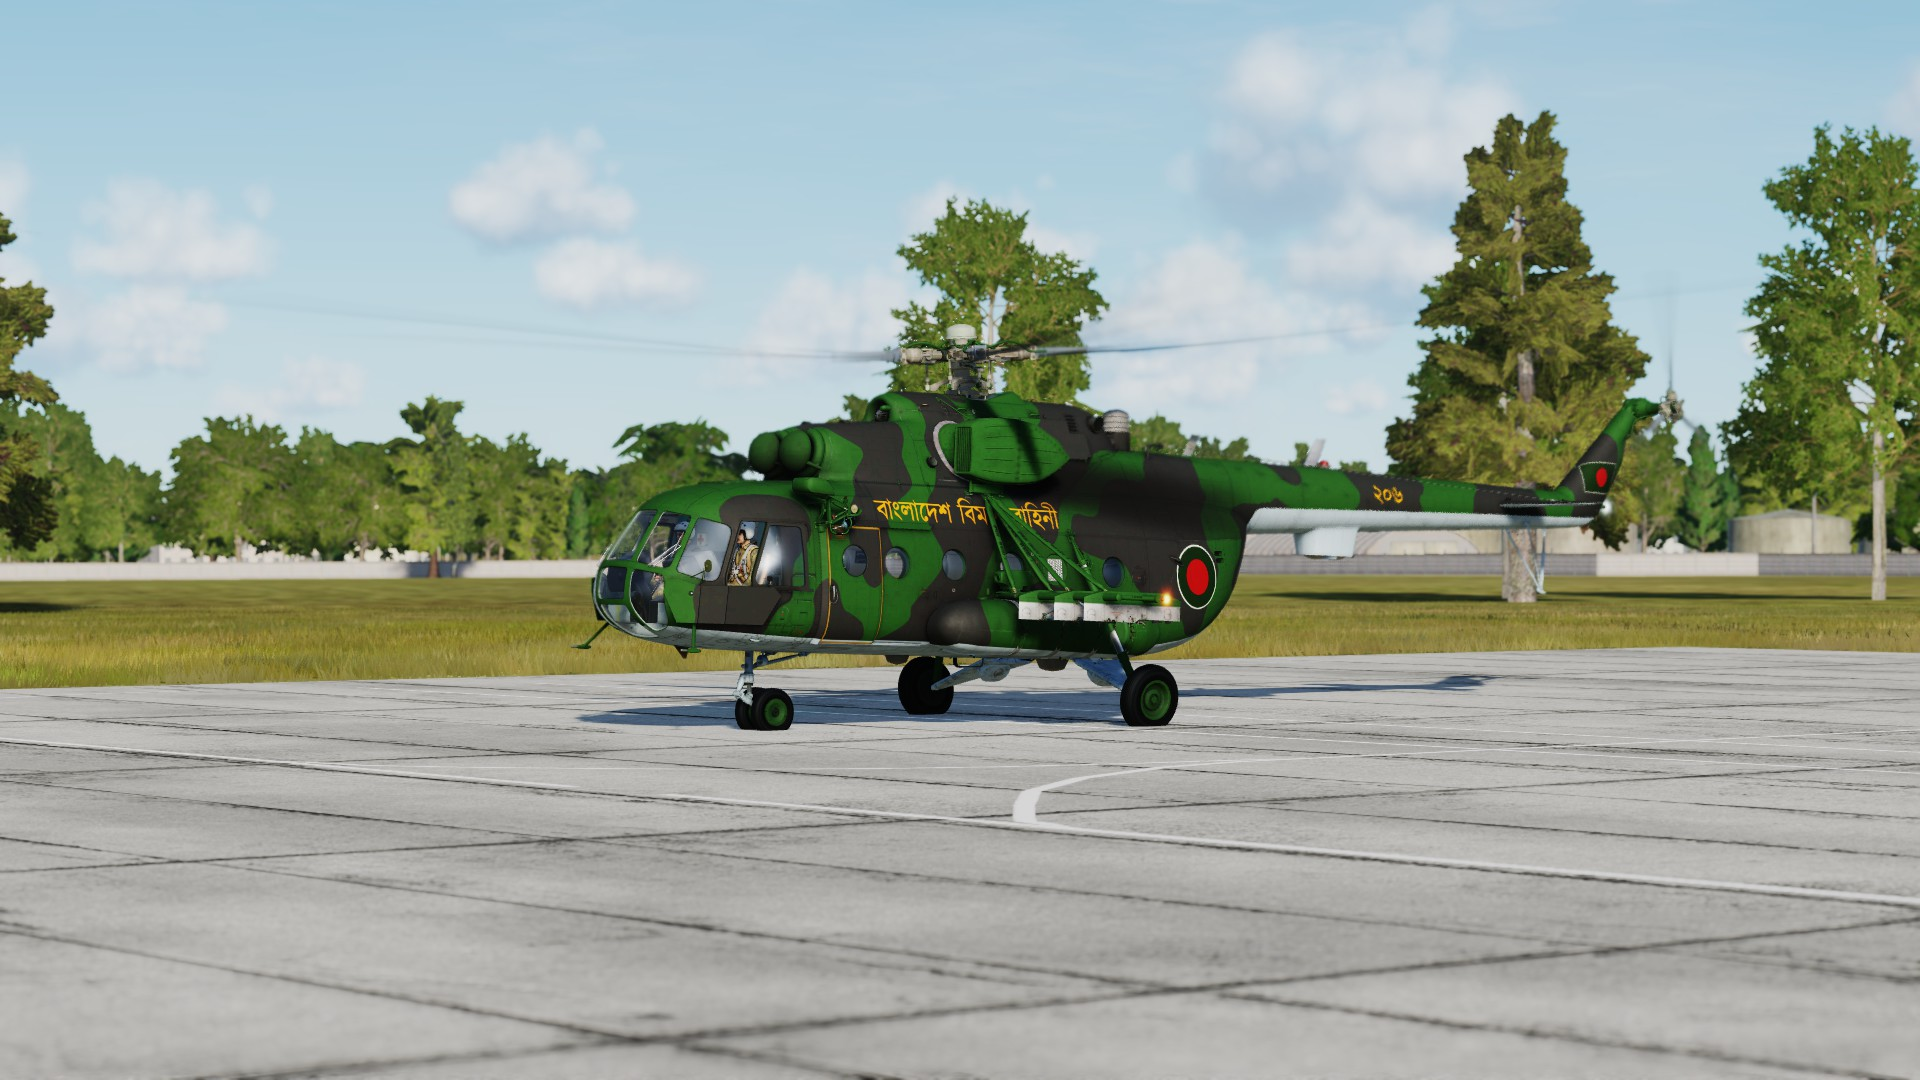 Bangladesh Air Force Mi-17 (Dark) updated